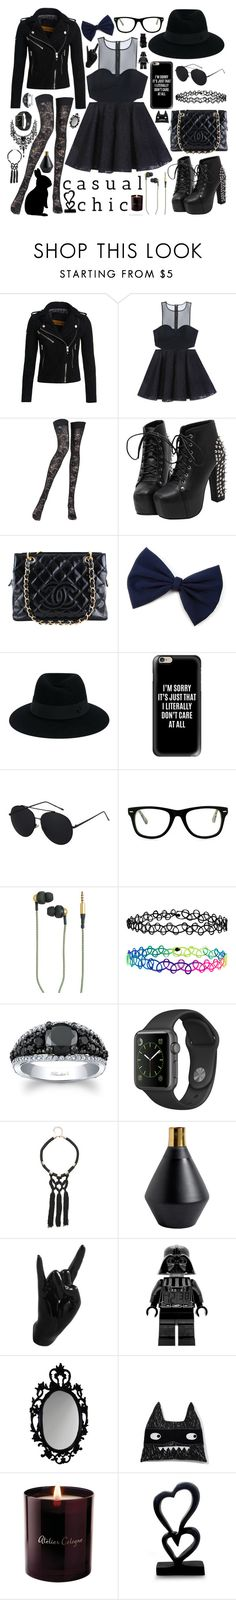 """""""BLACK"""" by rndmchick ❤ liked on Polyvore featuring Superdry, Bebe, Pierre Mantoux, Chanel, Maison Michel, Casetify, Muse, Kreafunk, Accessorize and Thelermont Hupton"""